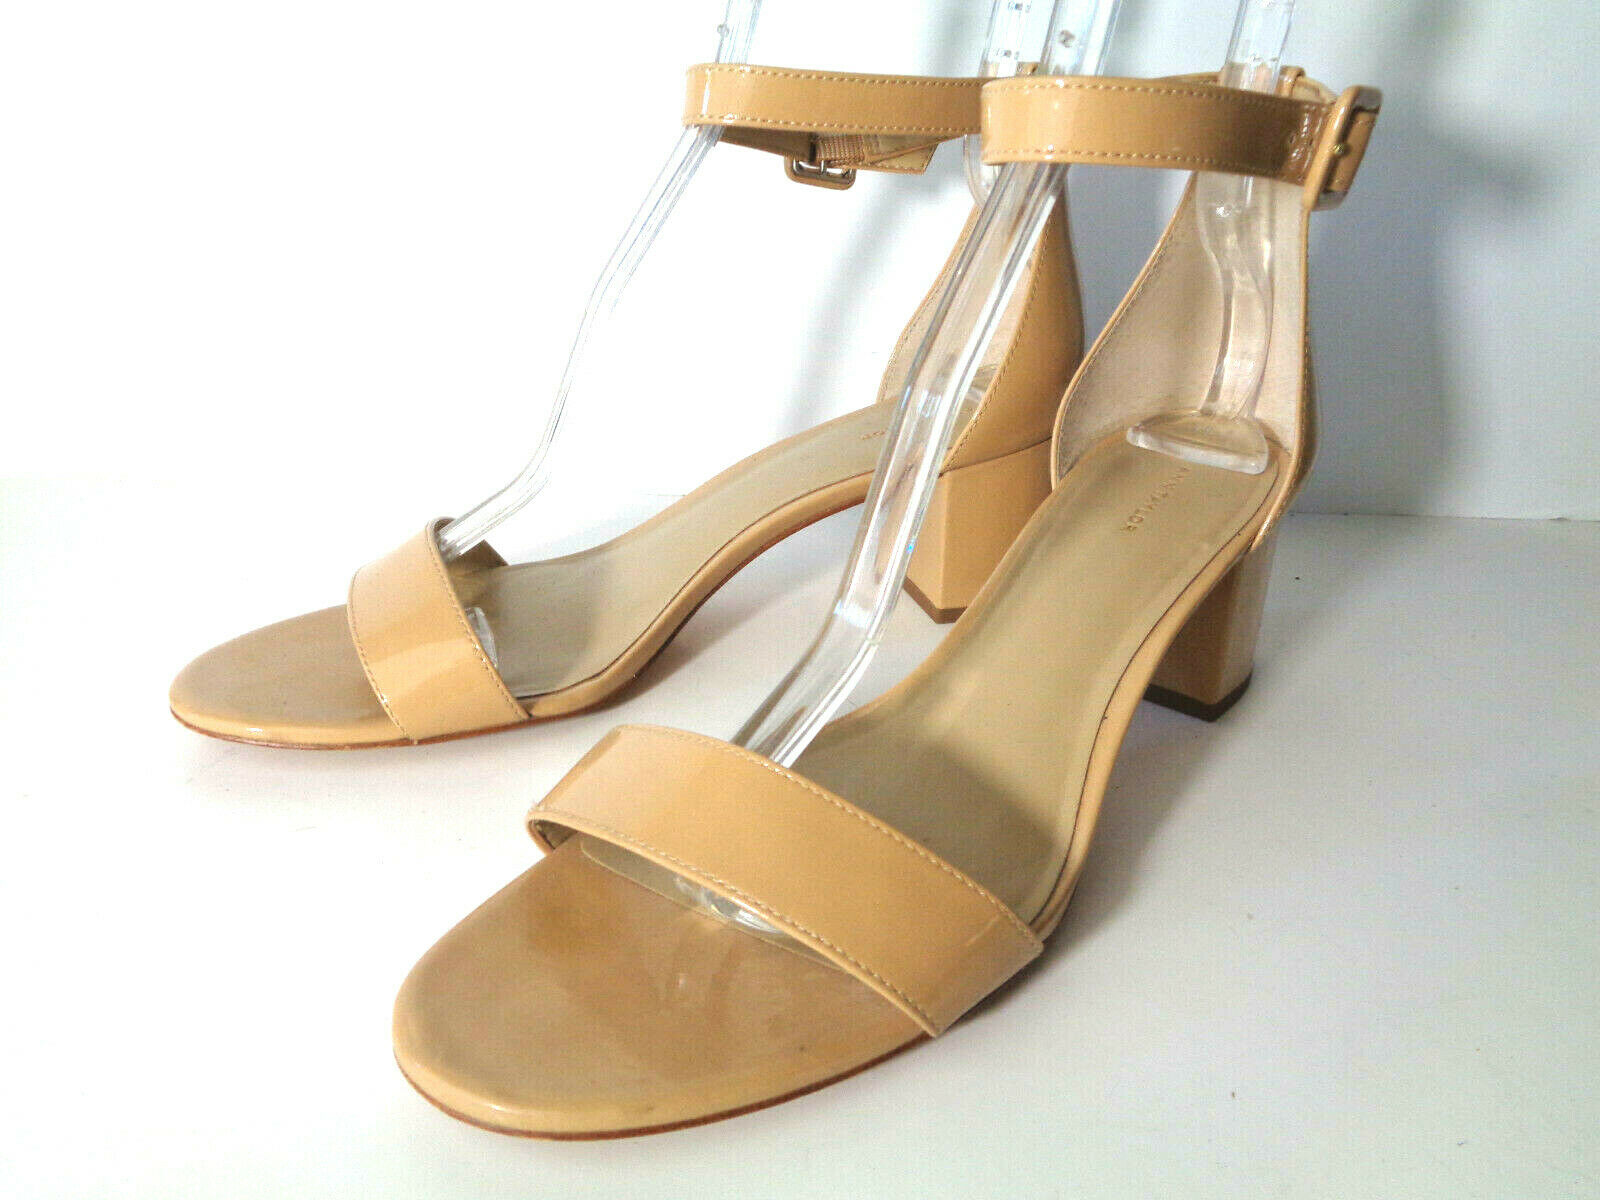 ANN TAYLOR 11M Beige Patent Leather Closed Chunky Heel Sandals Shoes Ankle Strap